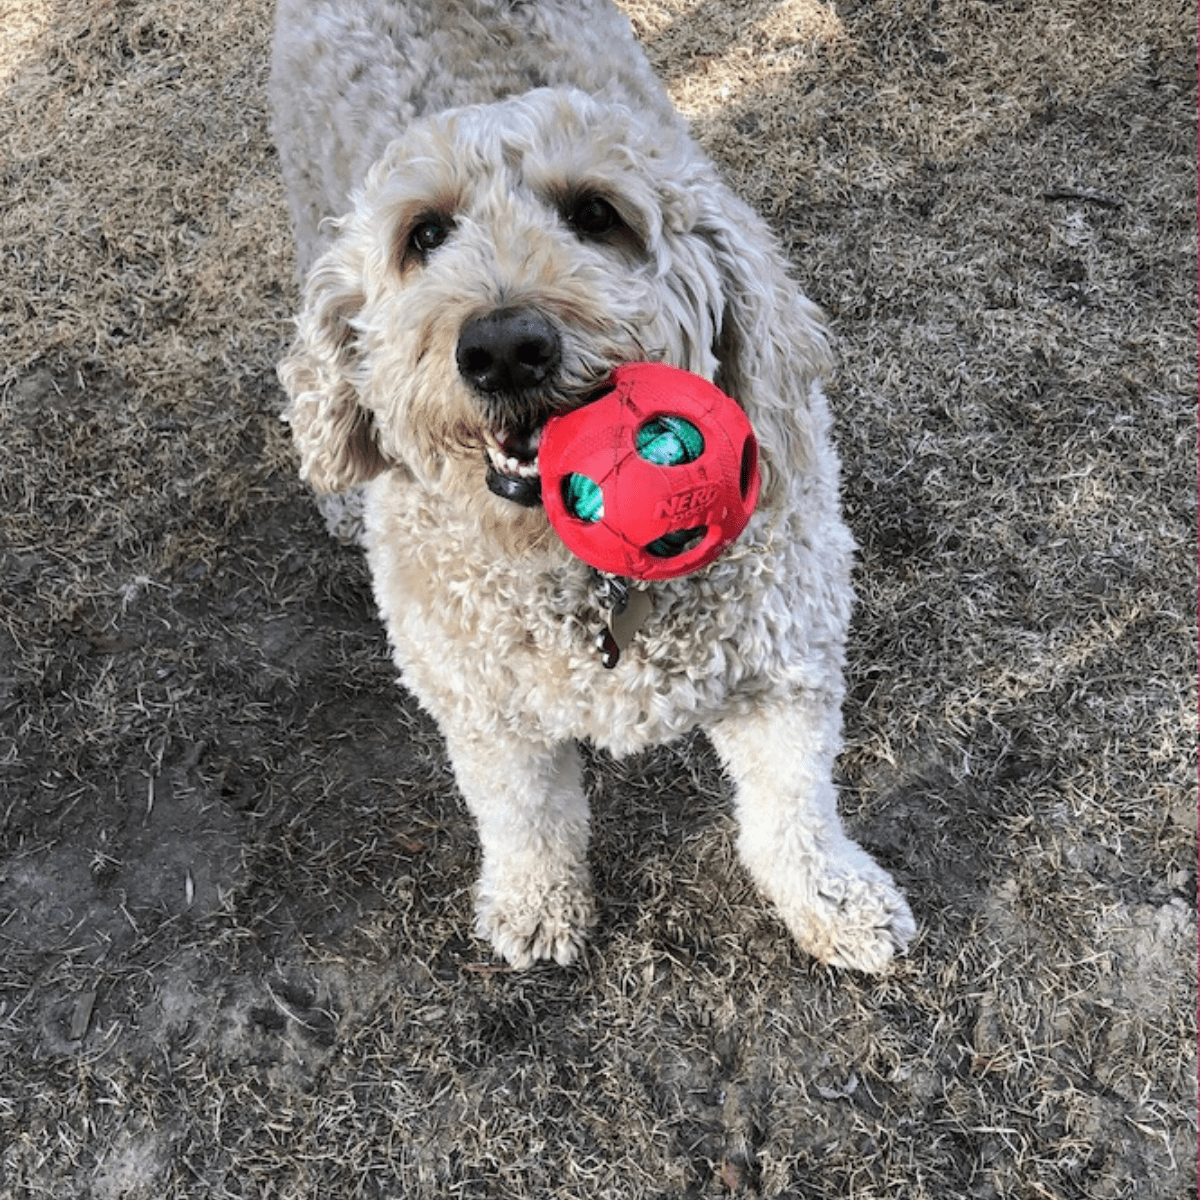 golden doodle with a red ball in her mouth